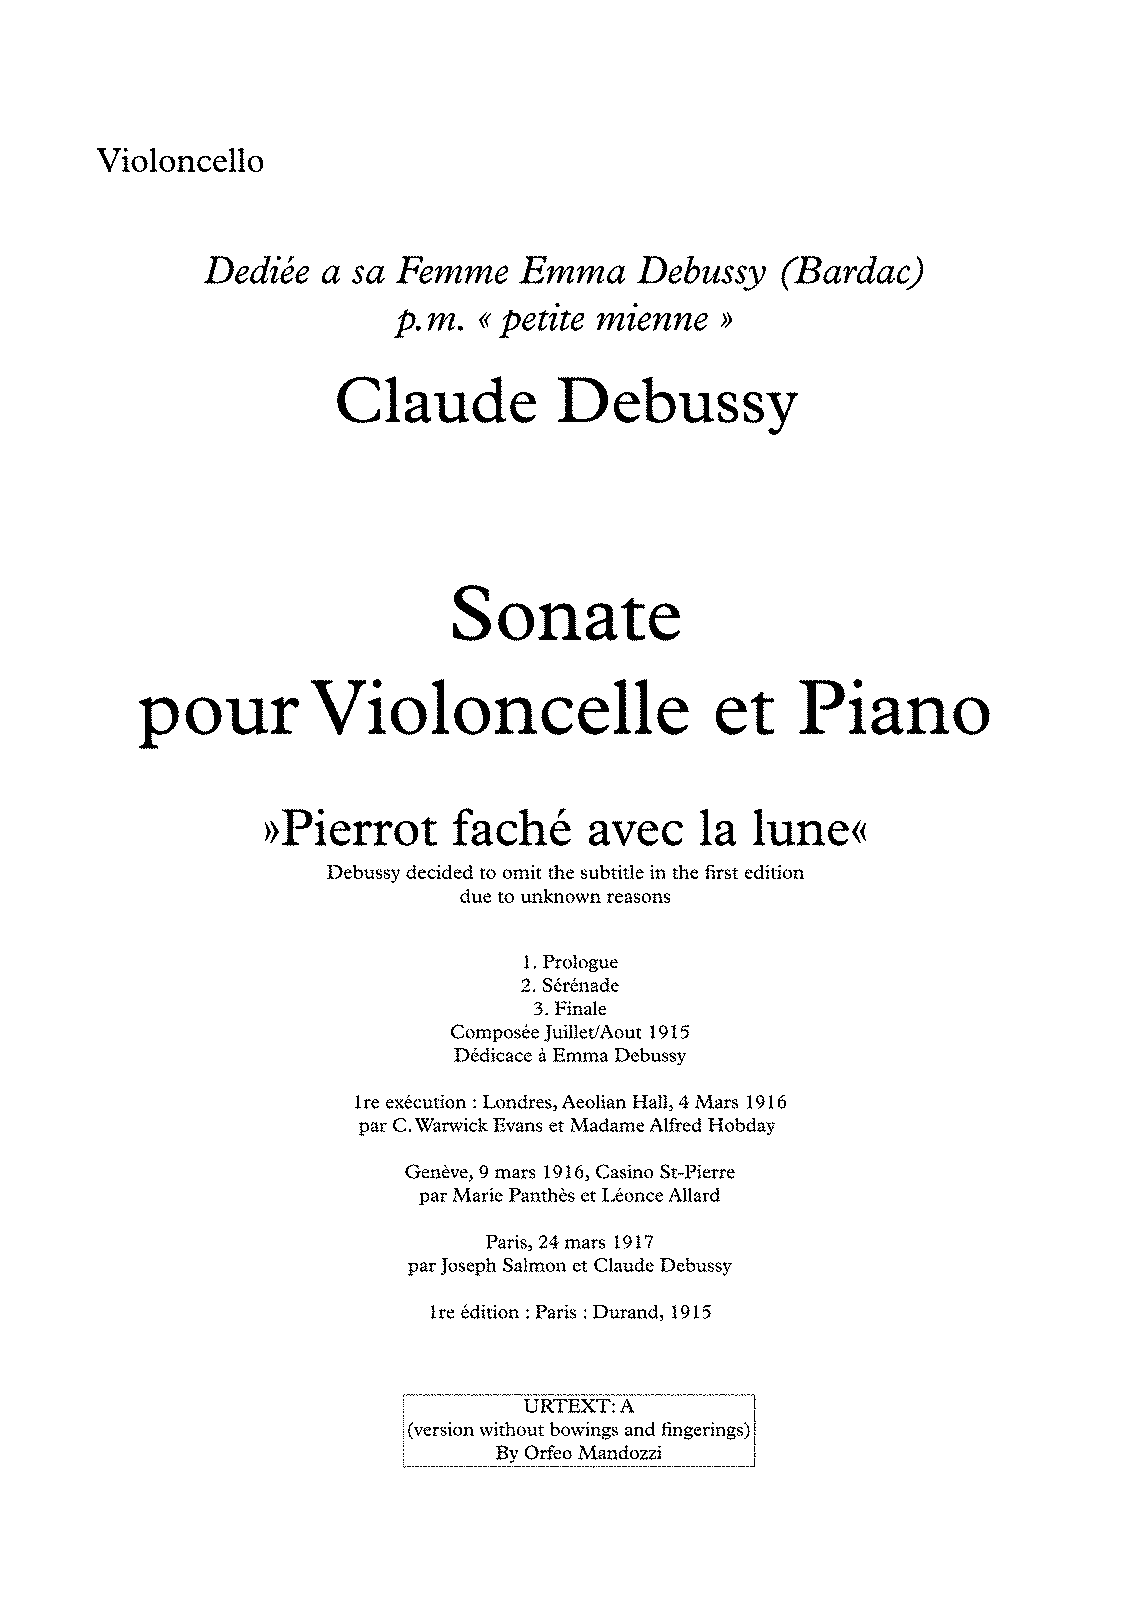 PMLP14756-Debussy NoBowings Mandozzi Cello Part.pdf